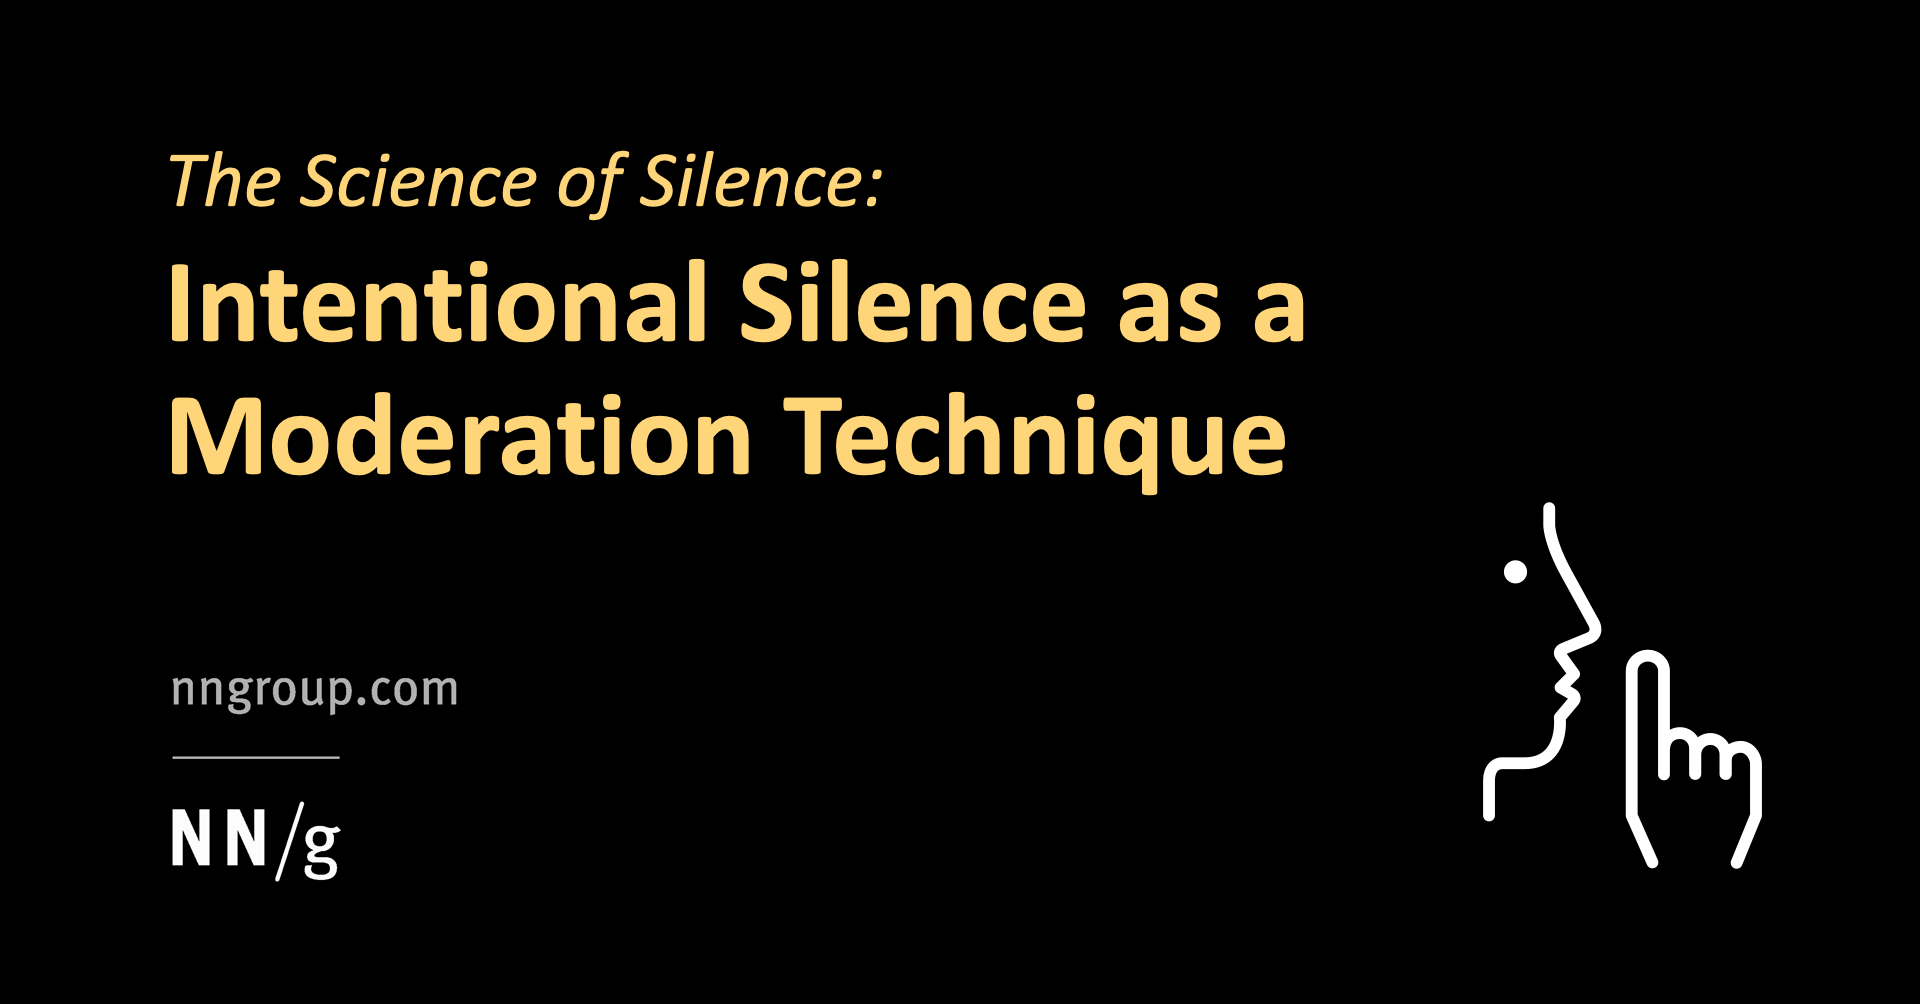 The Science of Silence: Intentional Silence as a Moderation